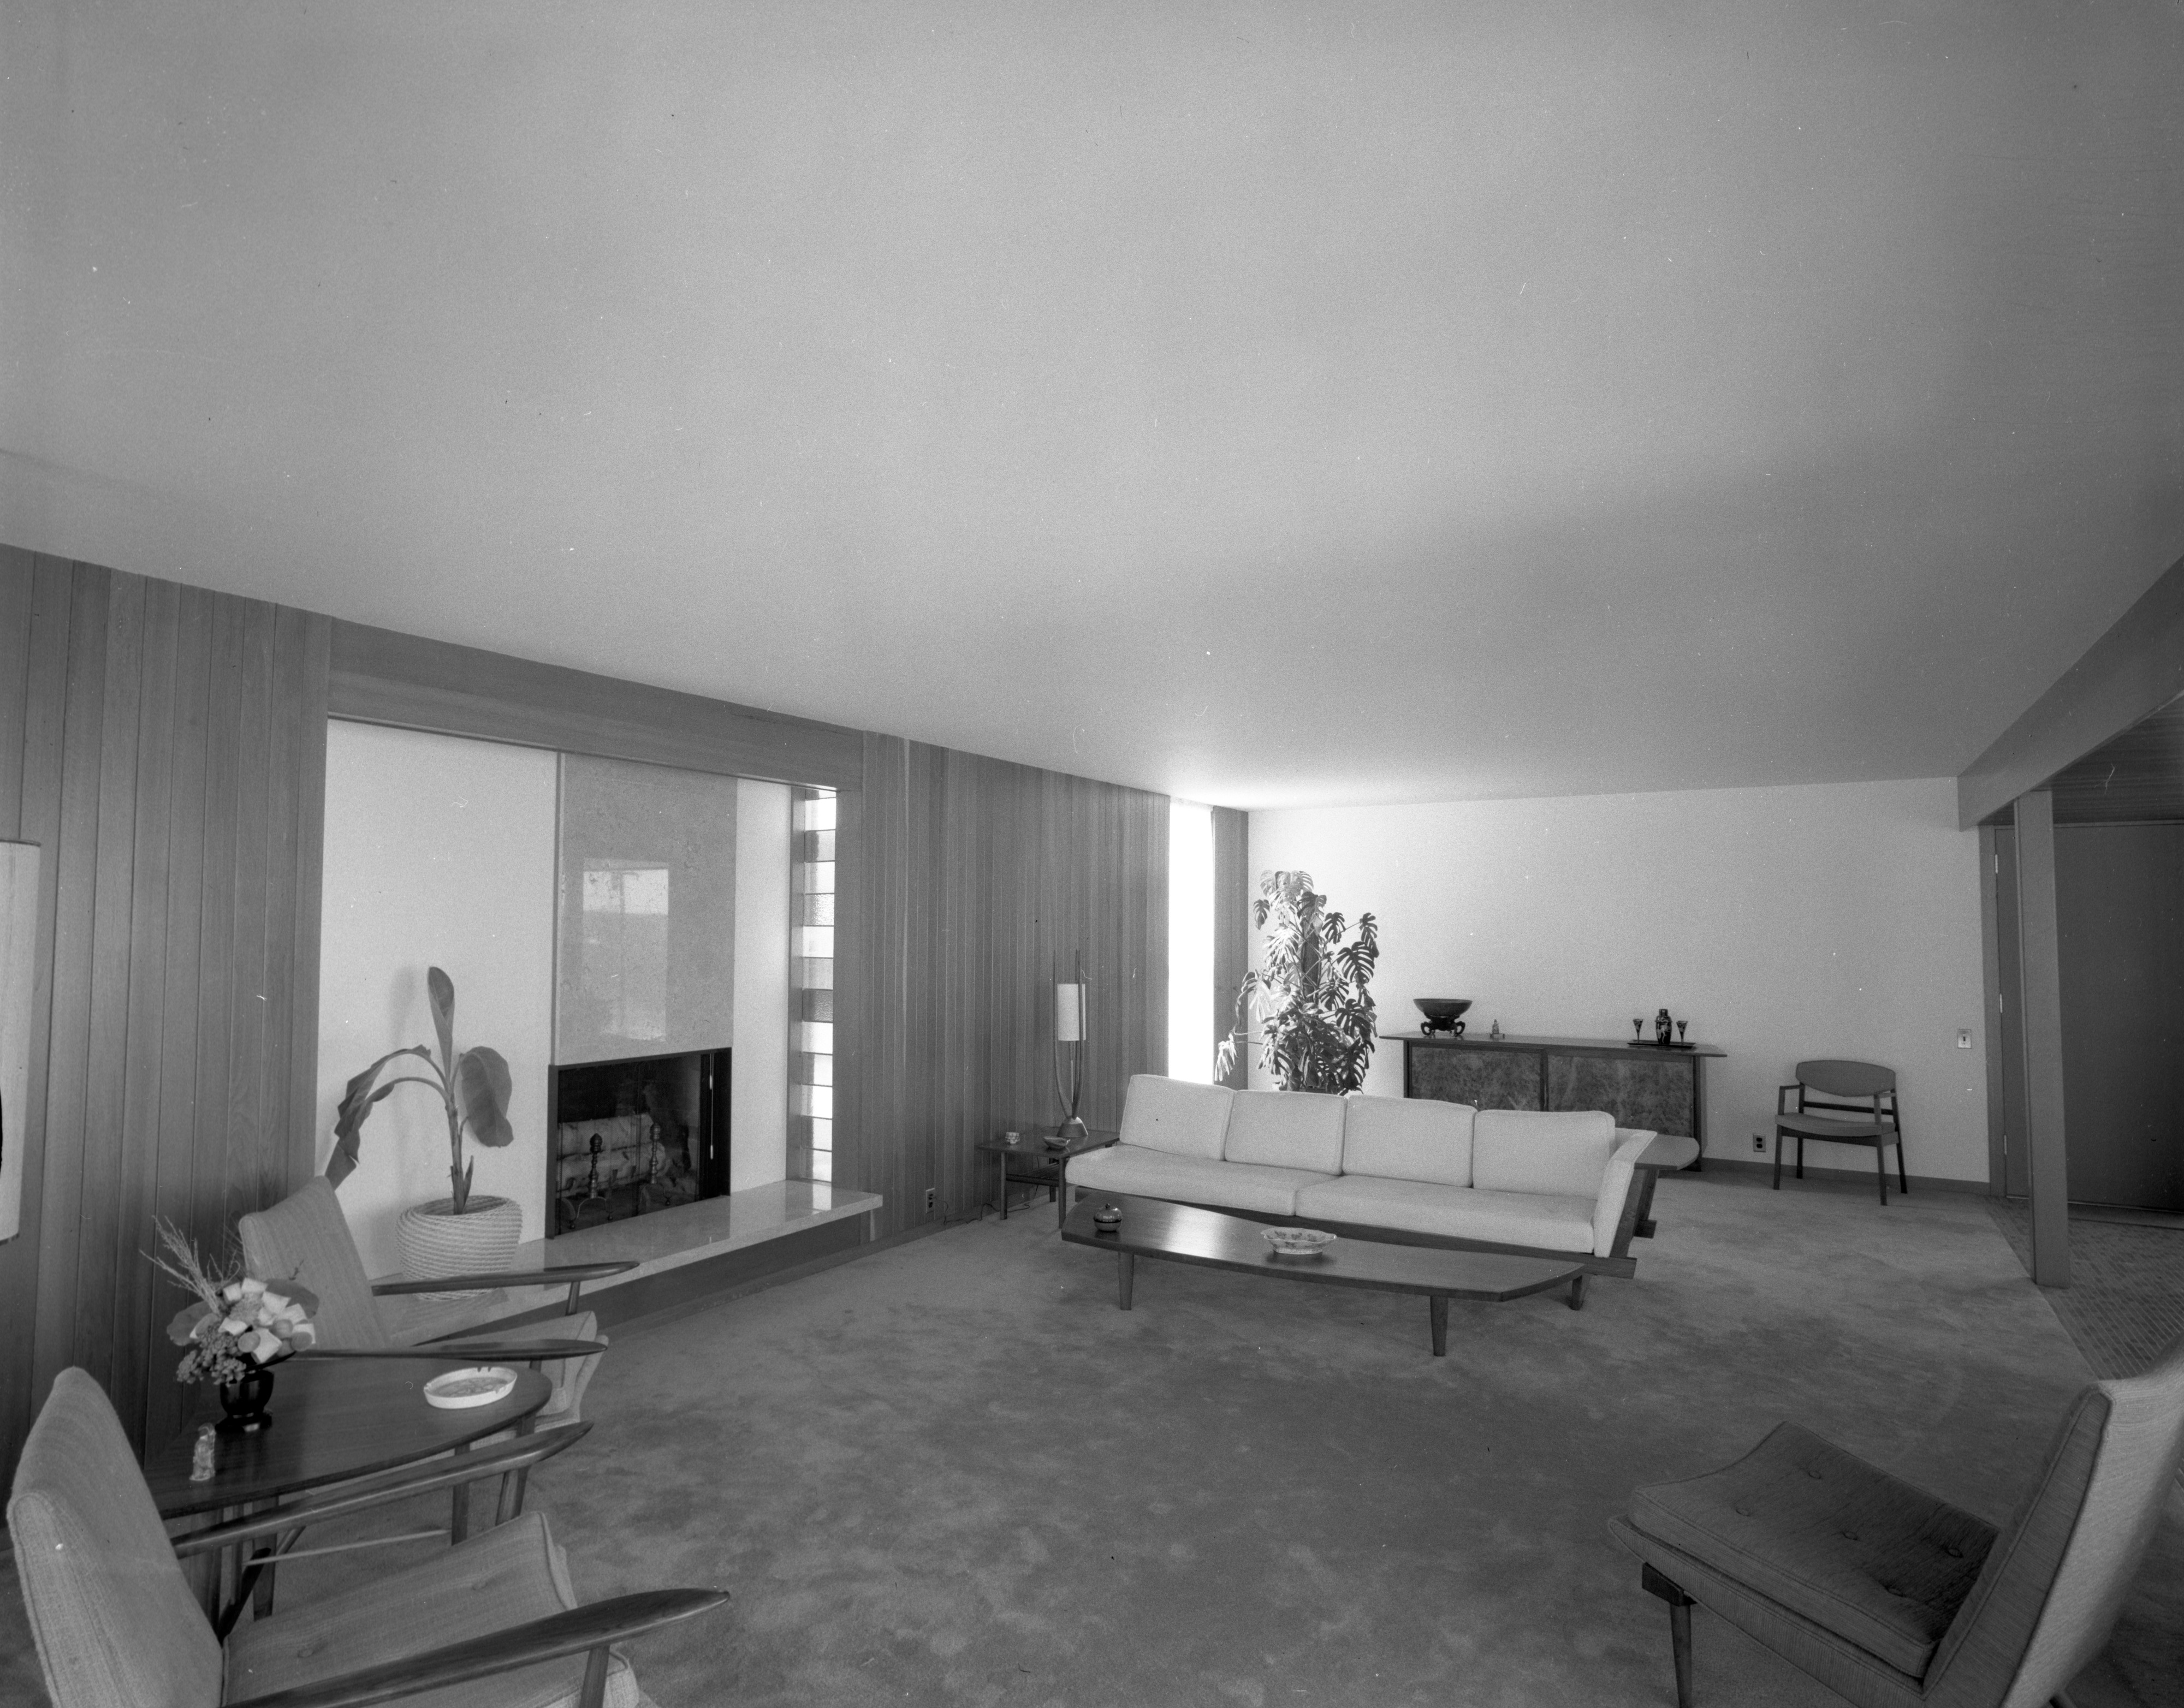 Formal Entertaining Focus of Living Room of Botch Home, March 1959 image